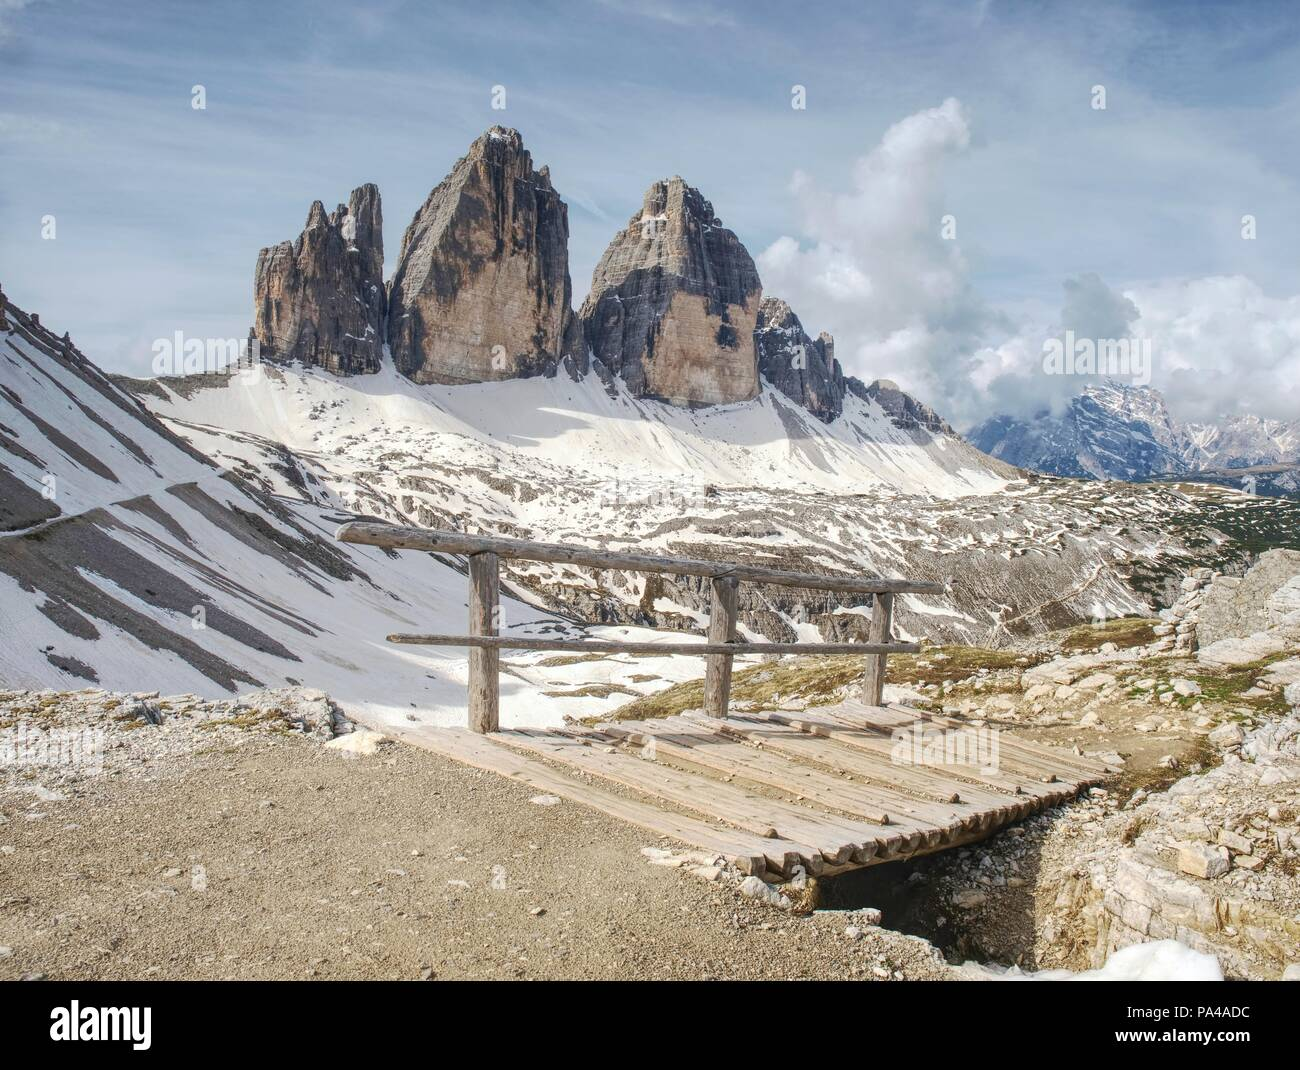 Wooden bridge and wooden handrail at difficulty part of popular trek around Tre Cime di Lavaredo ' Drei Zinnen ' in Dolomite Alps - Italy. - Stock Image